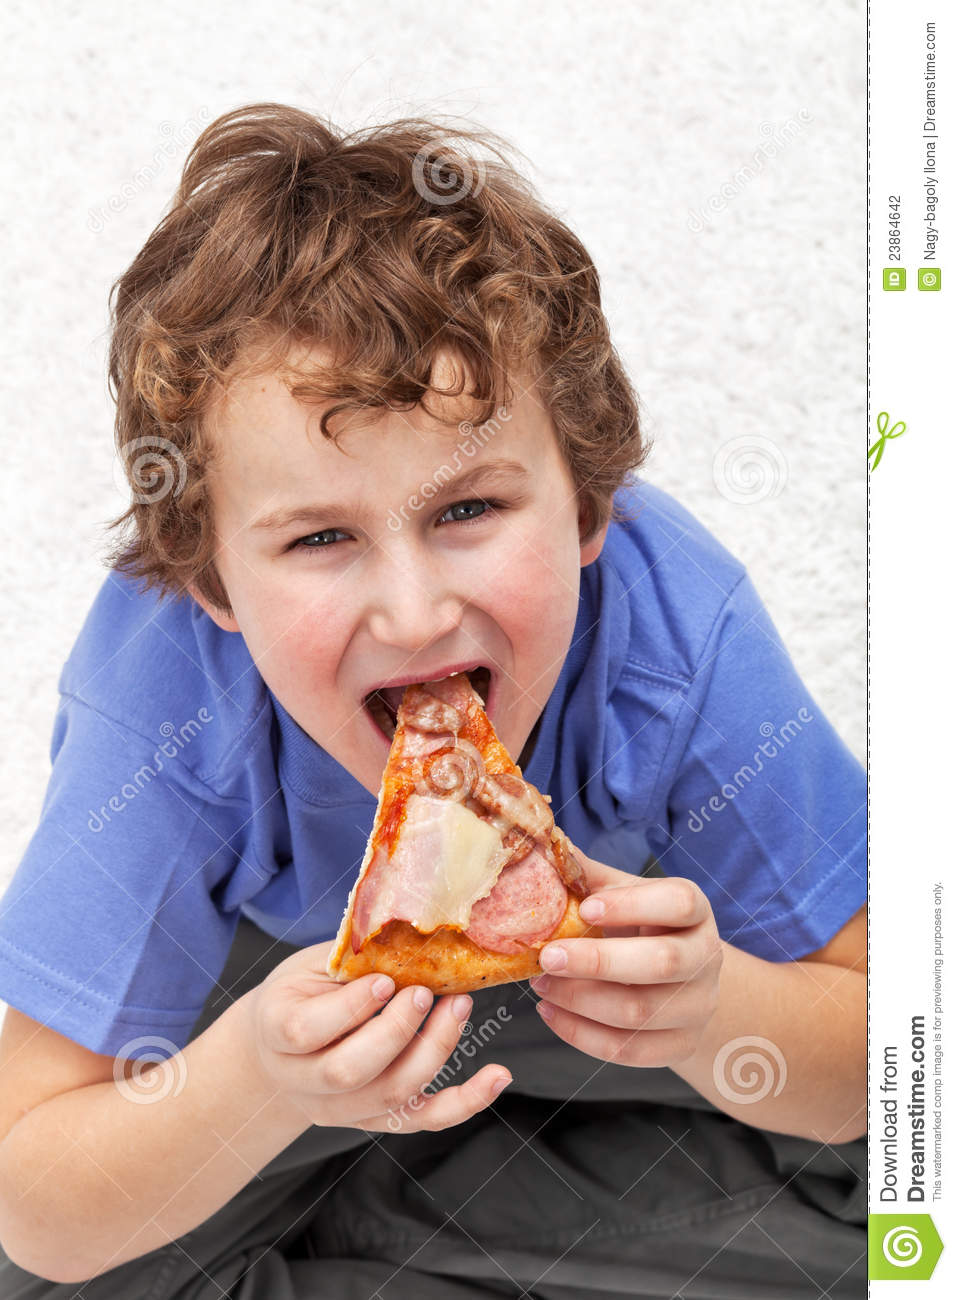 kid eating pizza - HD 957×1300